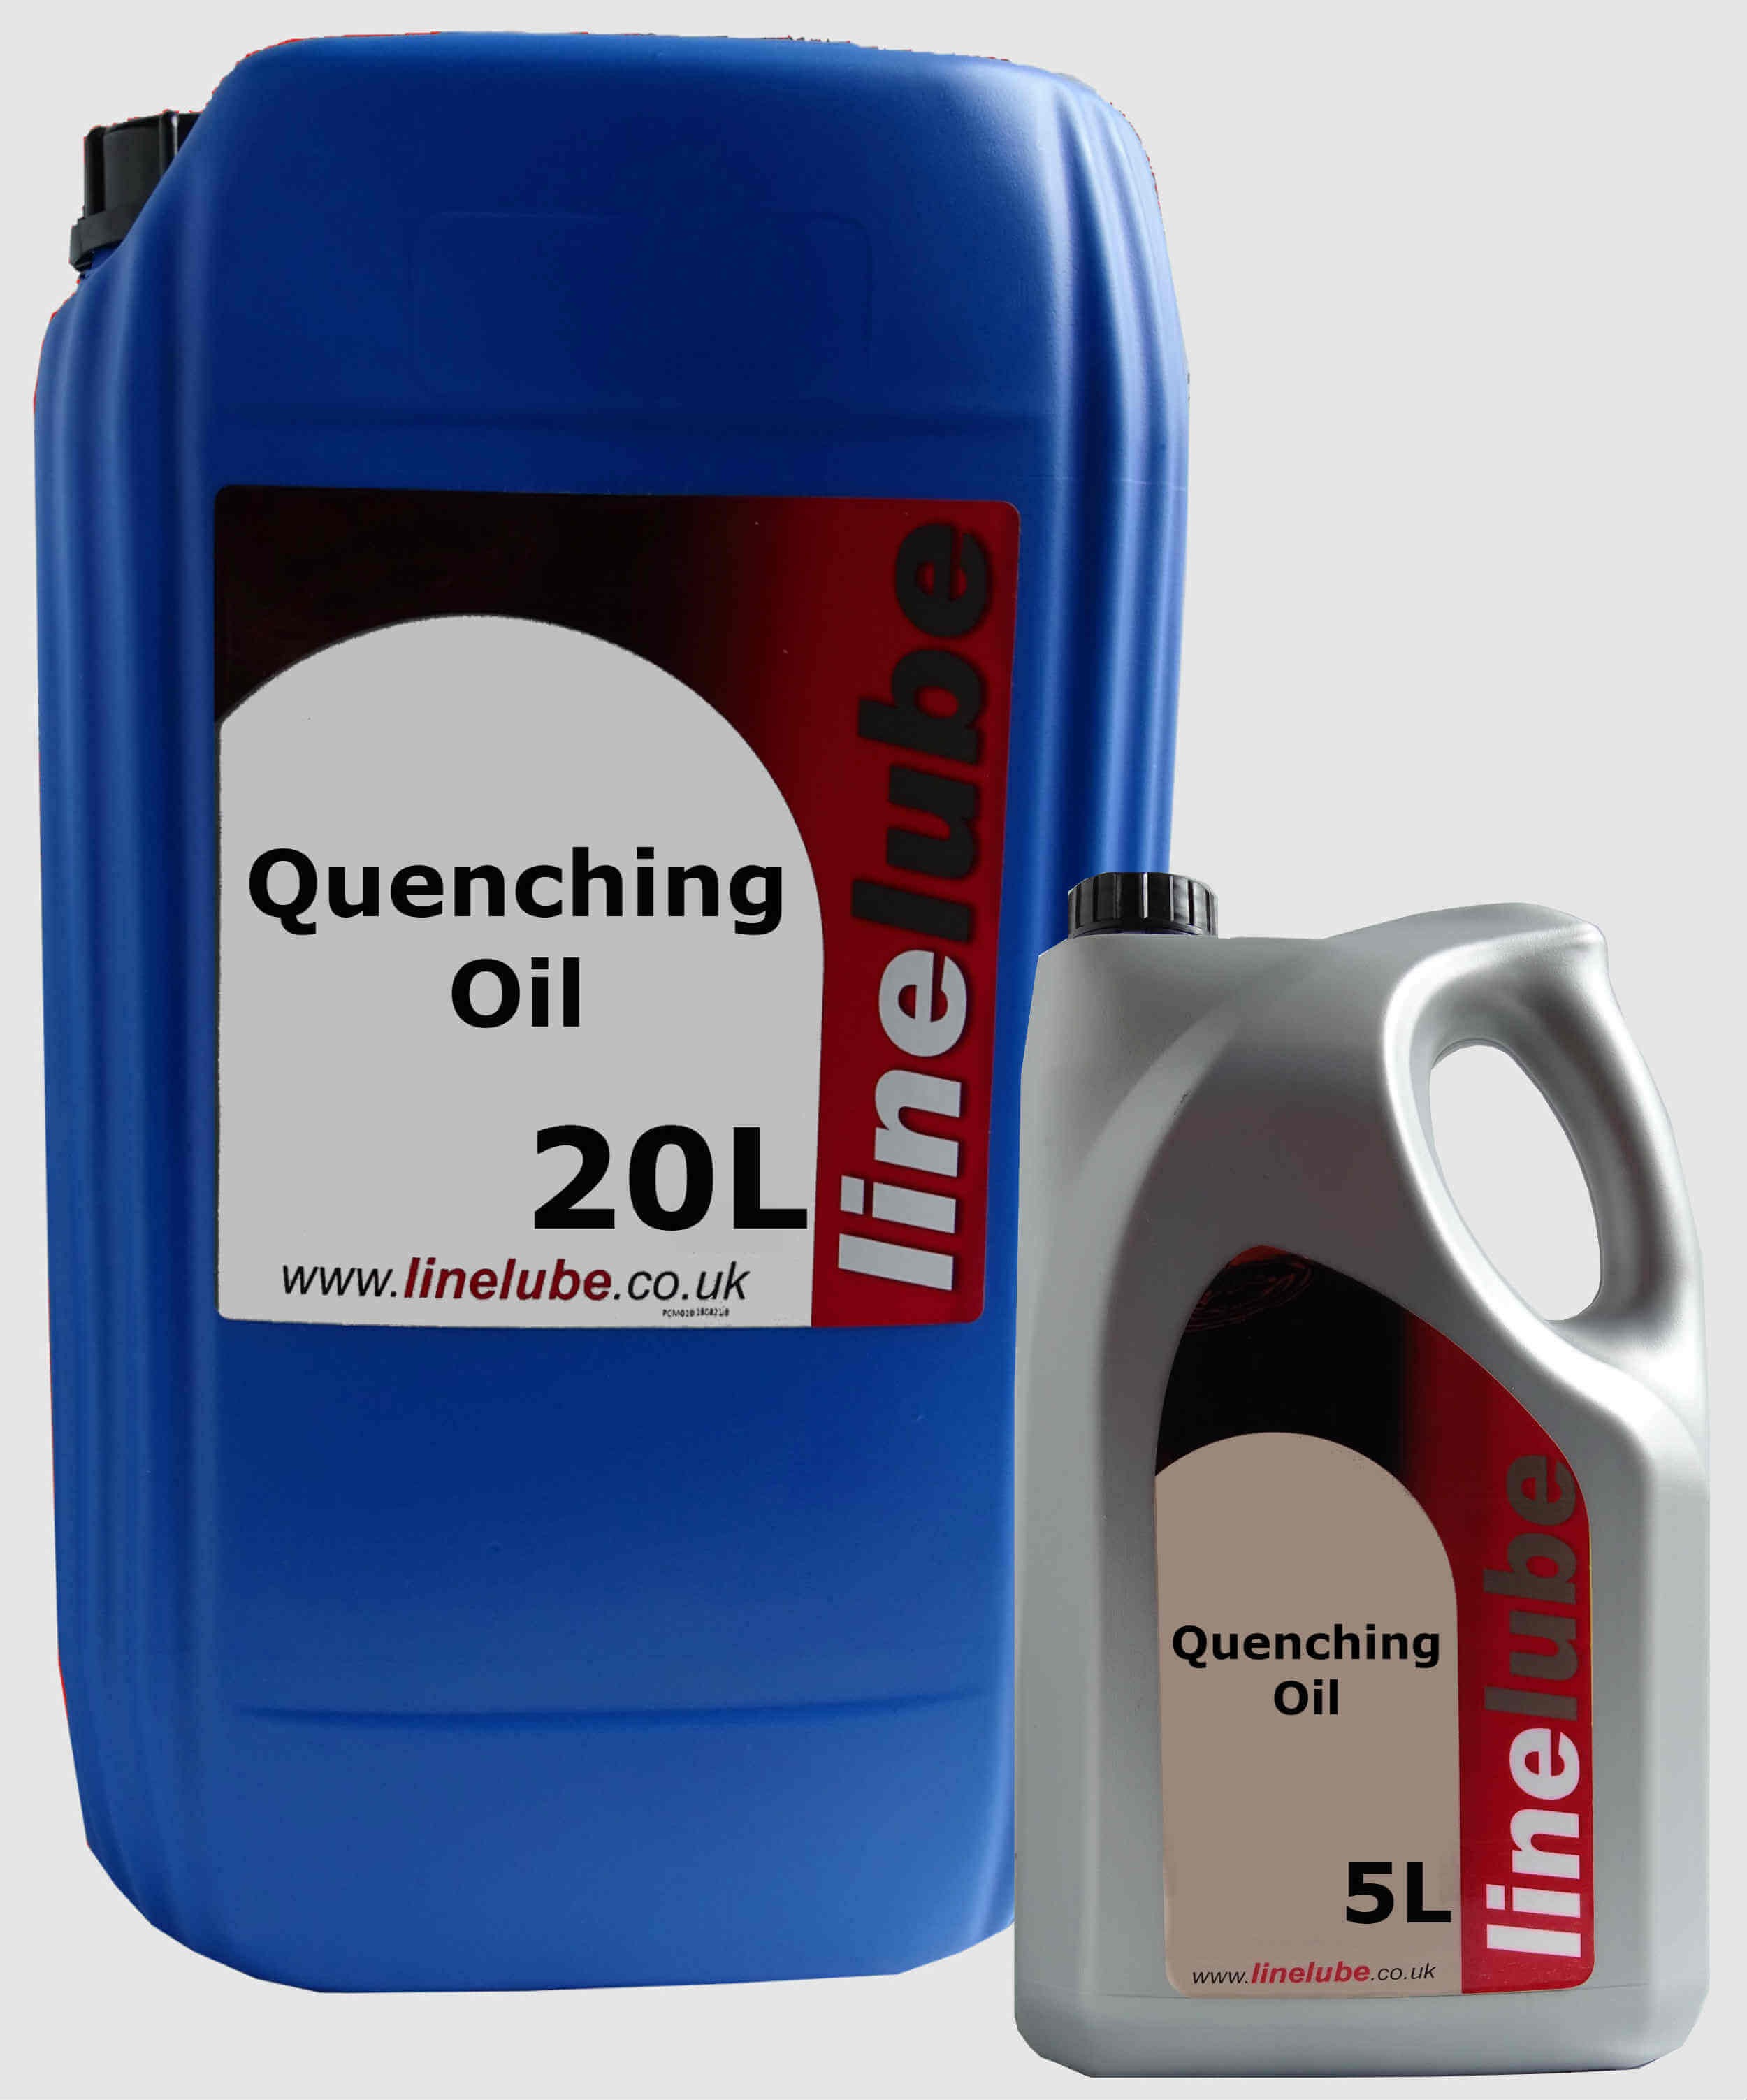 linelube Quenching Oil 3